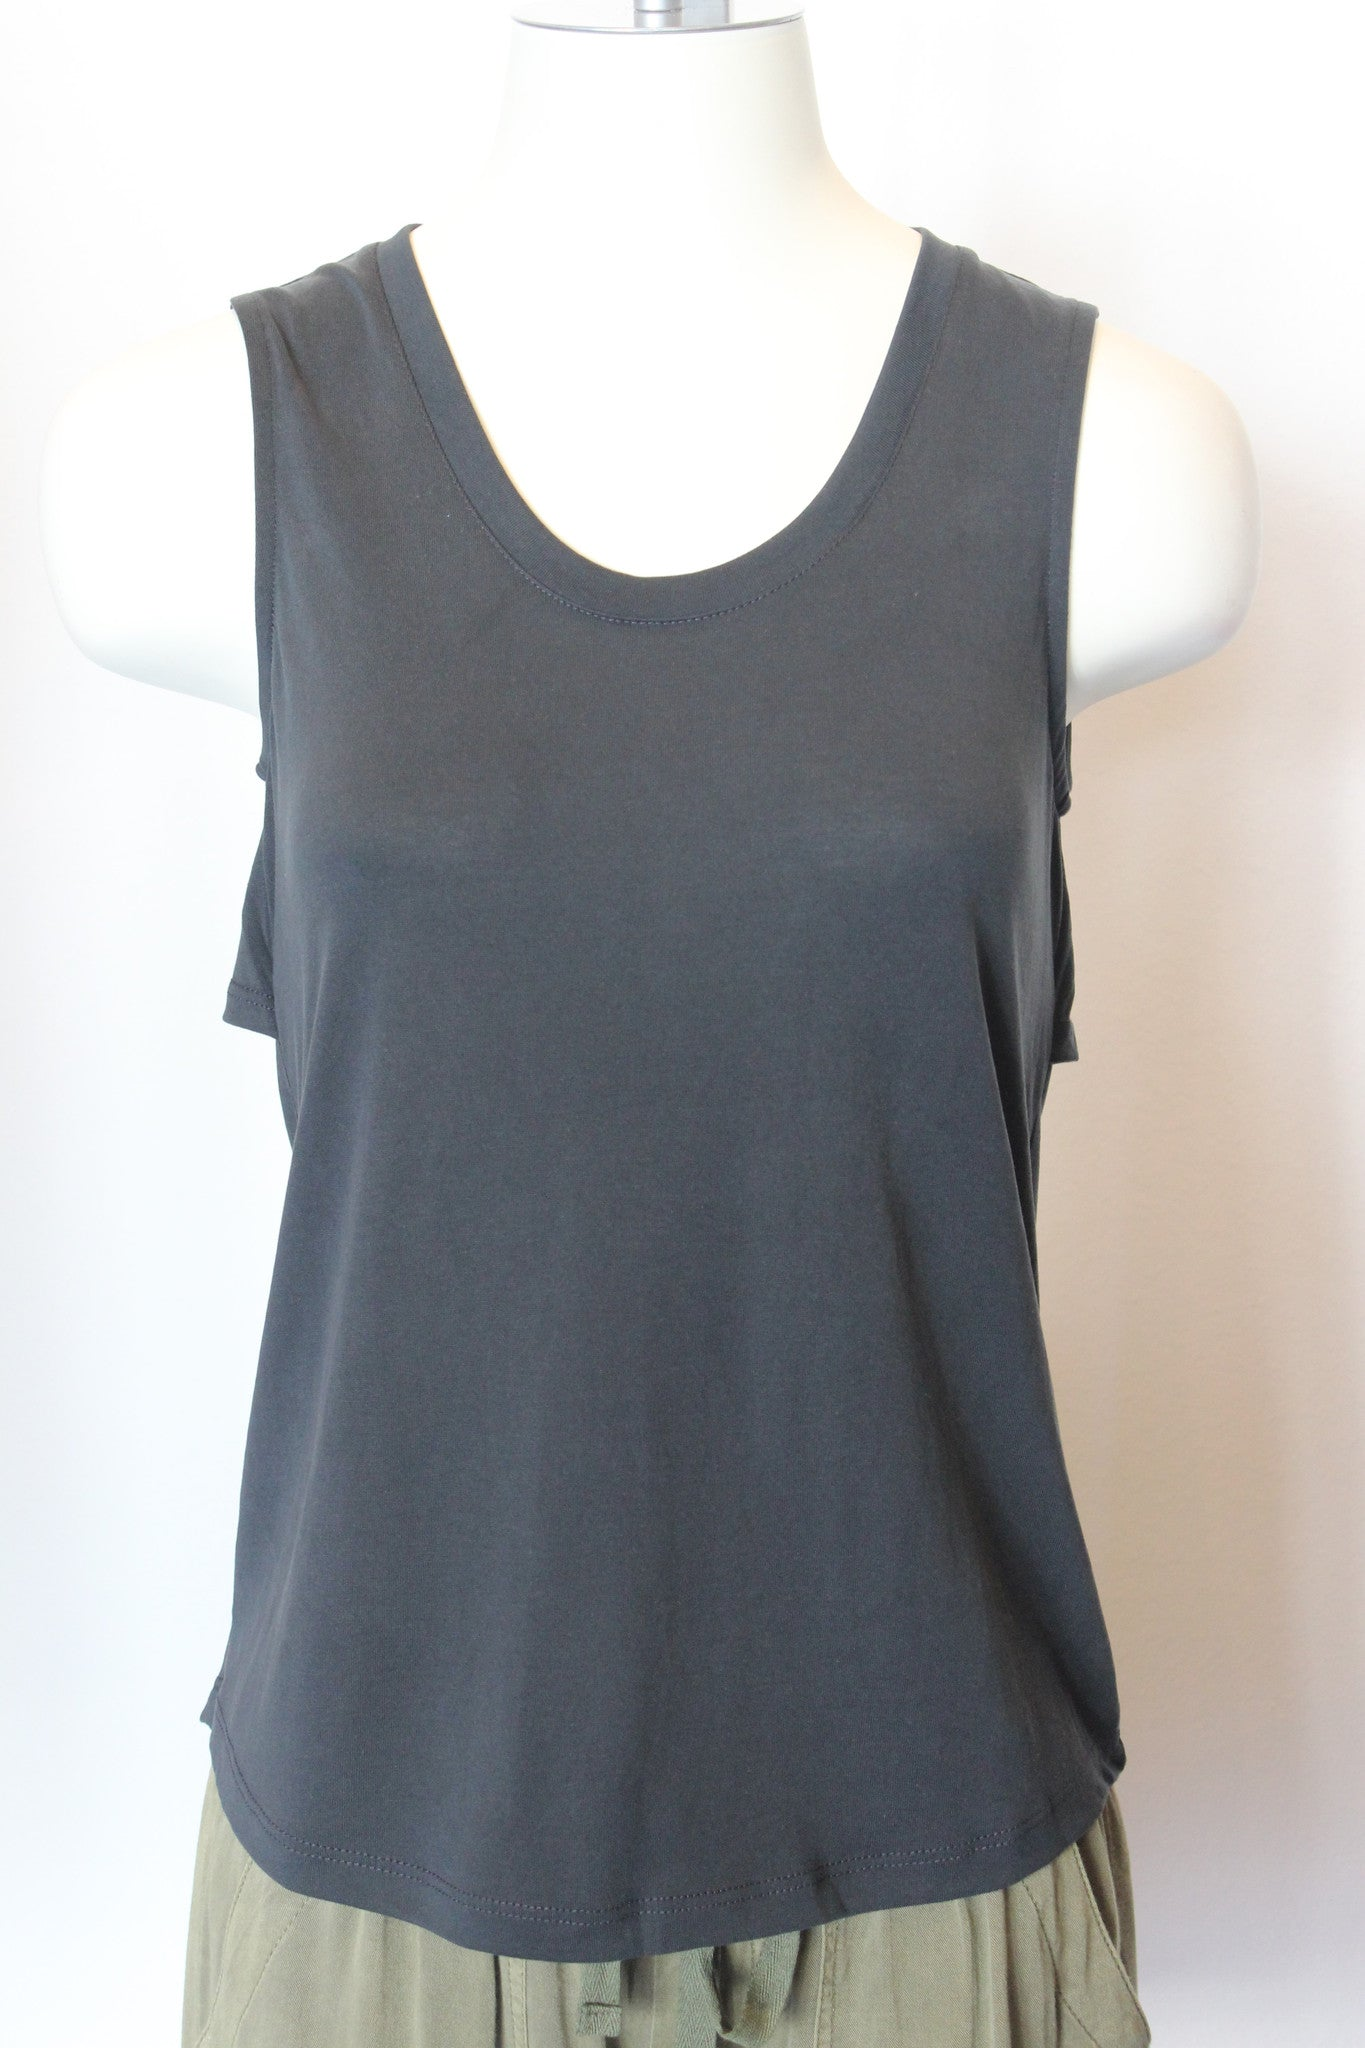 S/L Top w/Back Cutouts